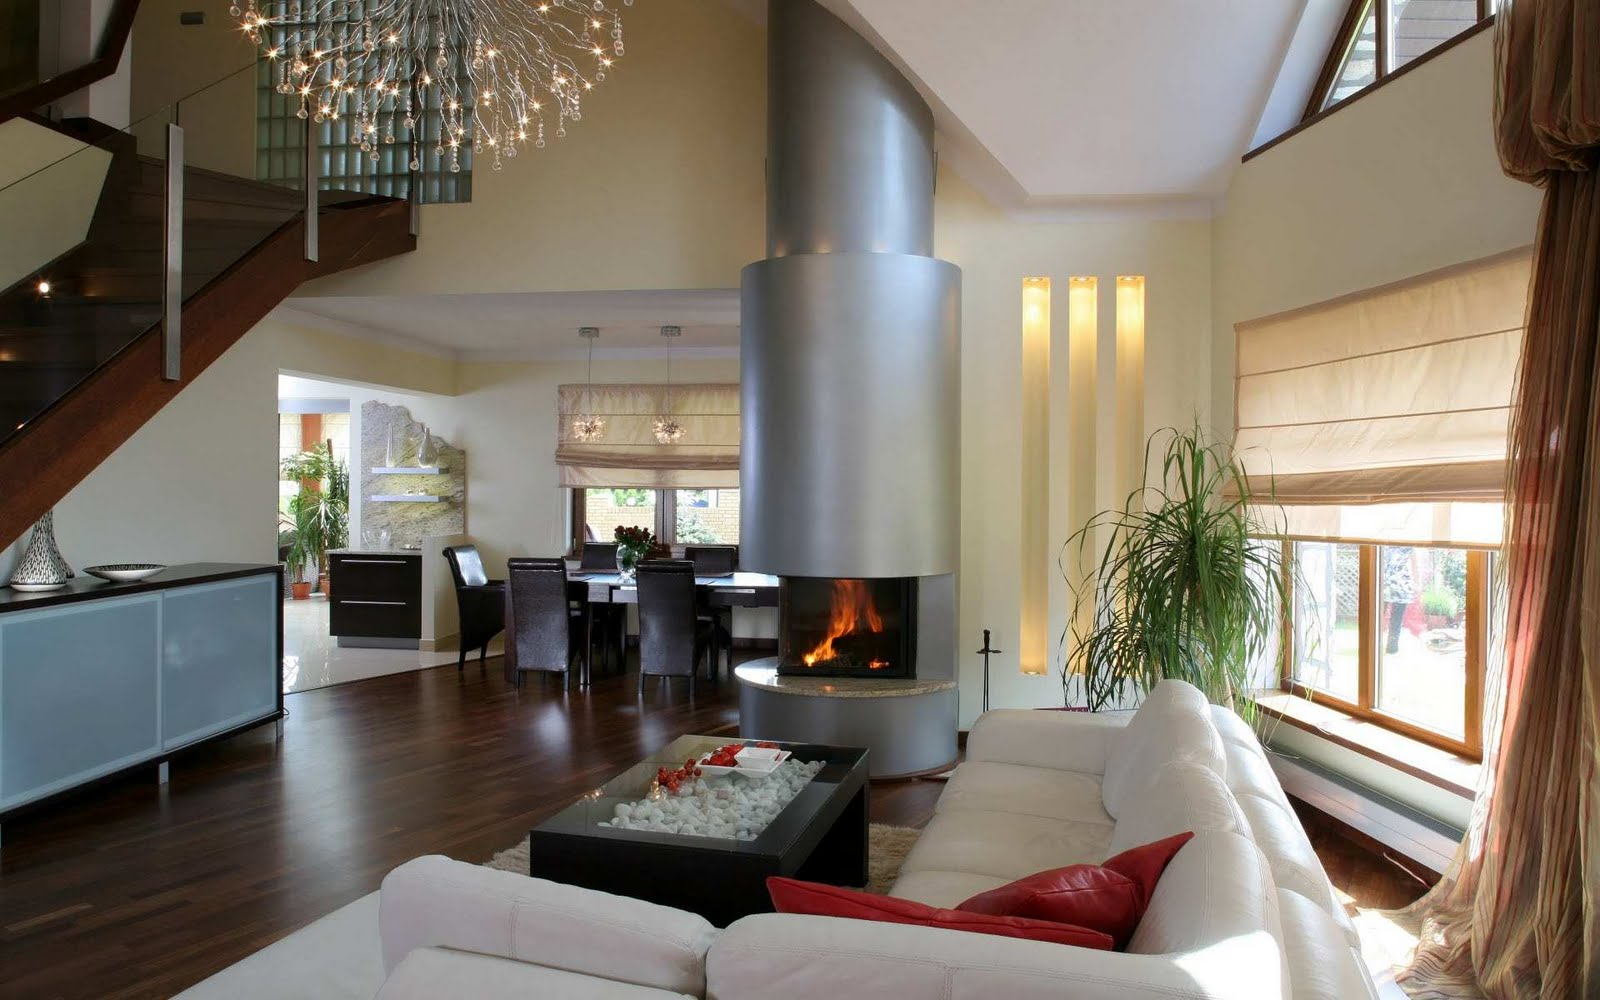 10 salas modernas con chimenea ideas para decorar for Casa namu diseno decoracion